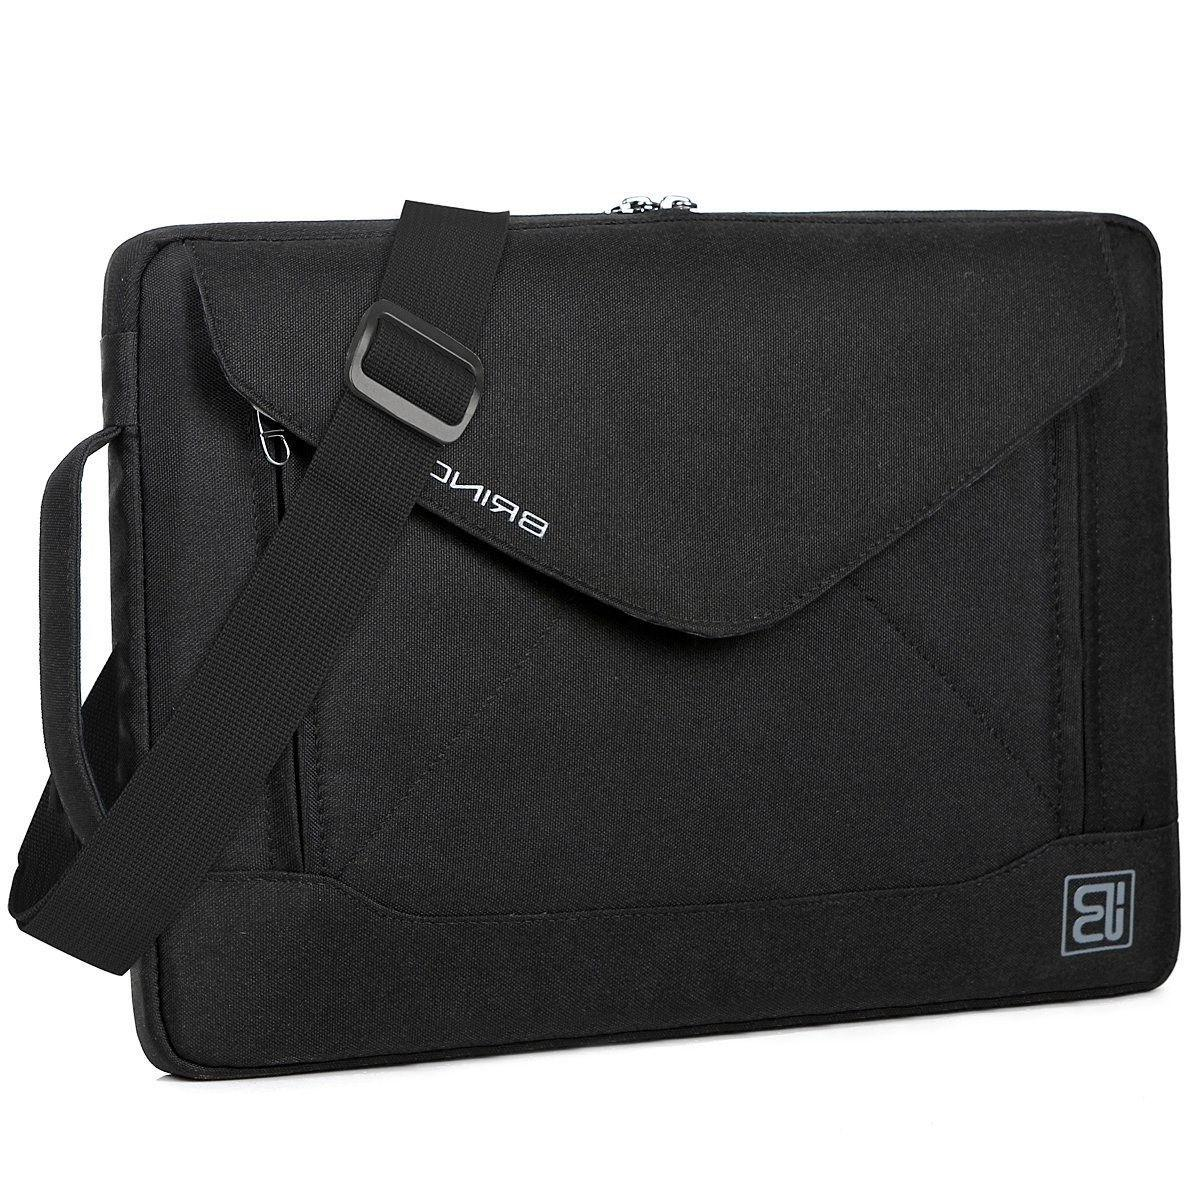 BRINCH Durable Slim Envelope Nylon 15.6 Inch Laptop Messenge